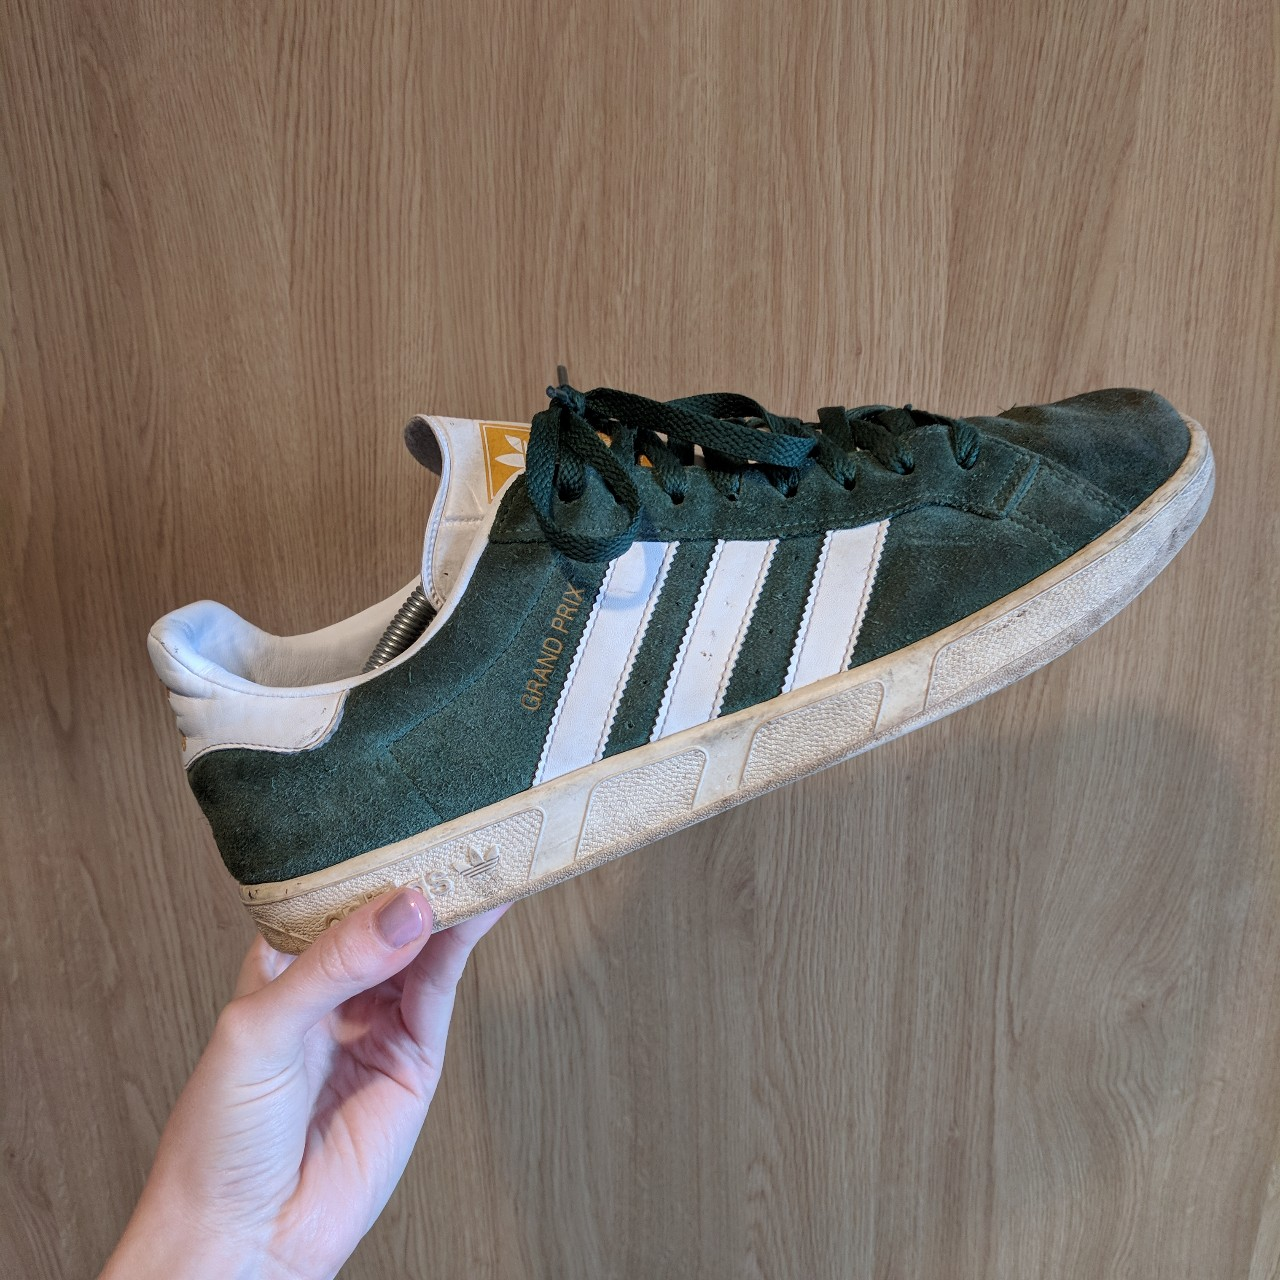 Green suede Adidas grand Prix trainers., Size 11